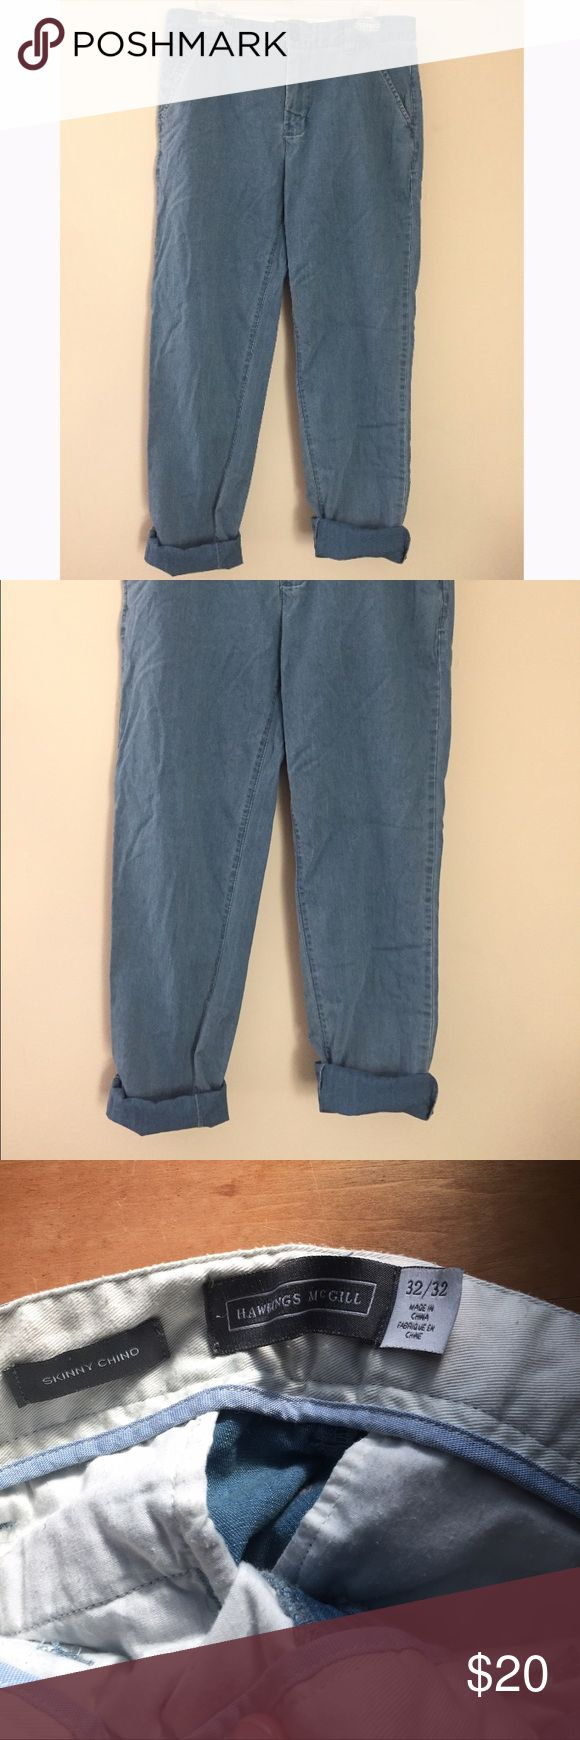 Men's Skinny Chino 32x32 Skinny chino jeans from urban outfitters. Like new. Soft denim. Very cool relaxed look. Urban Outfitters Pants Chinos & Khakis